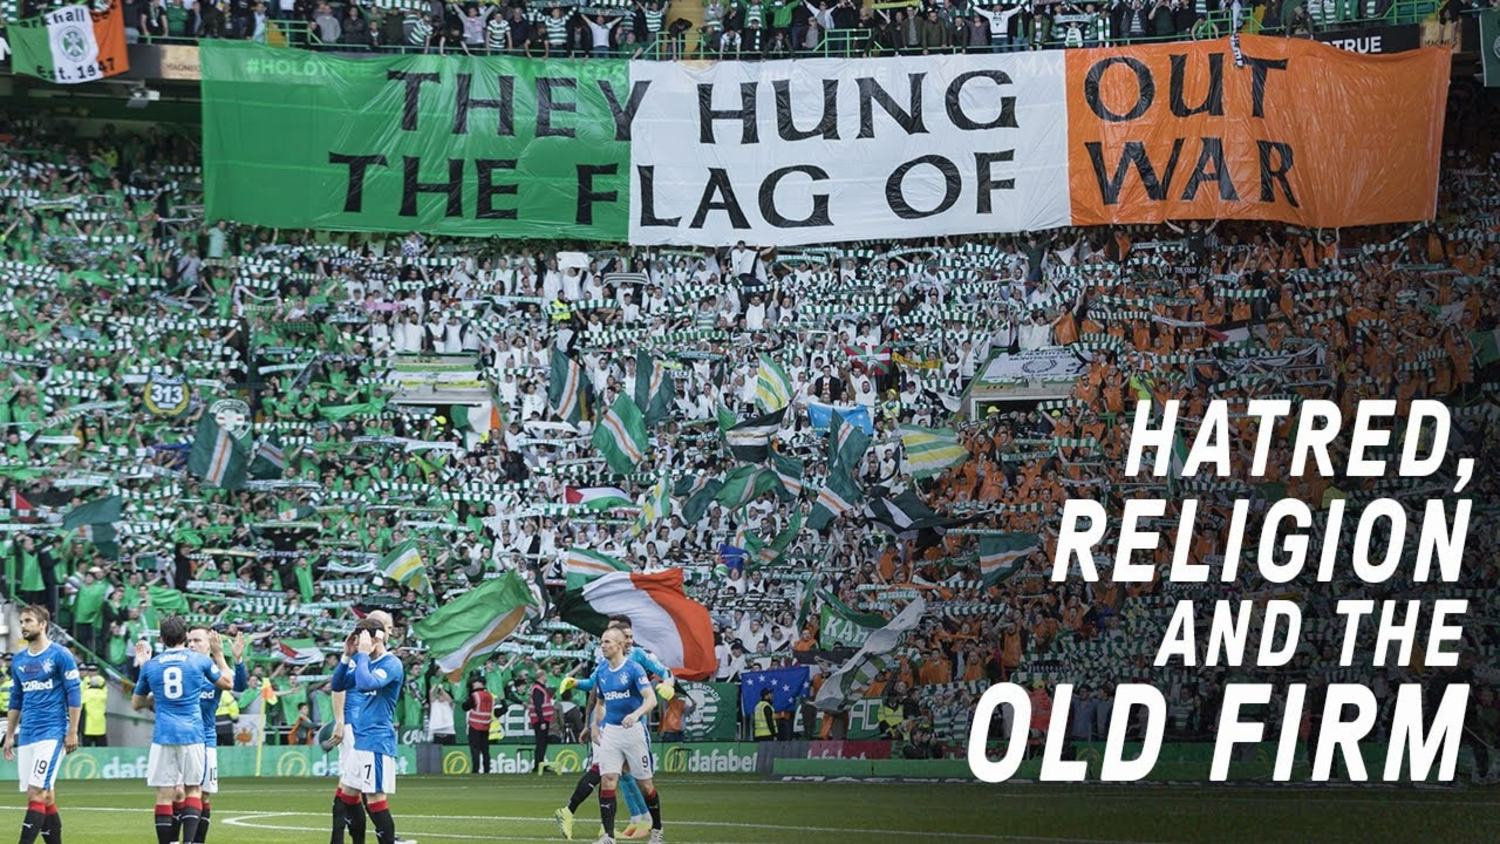 Celtic vs Rangers - Hatred, Religion and The Old Firm